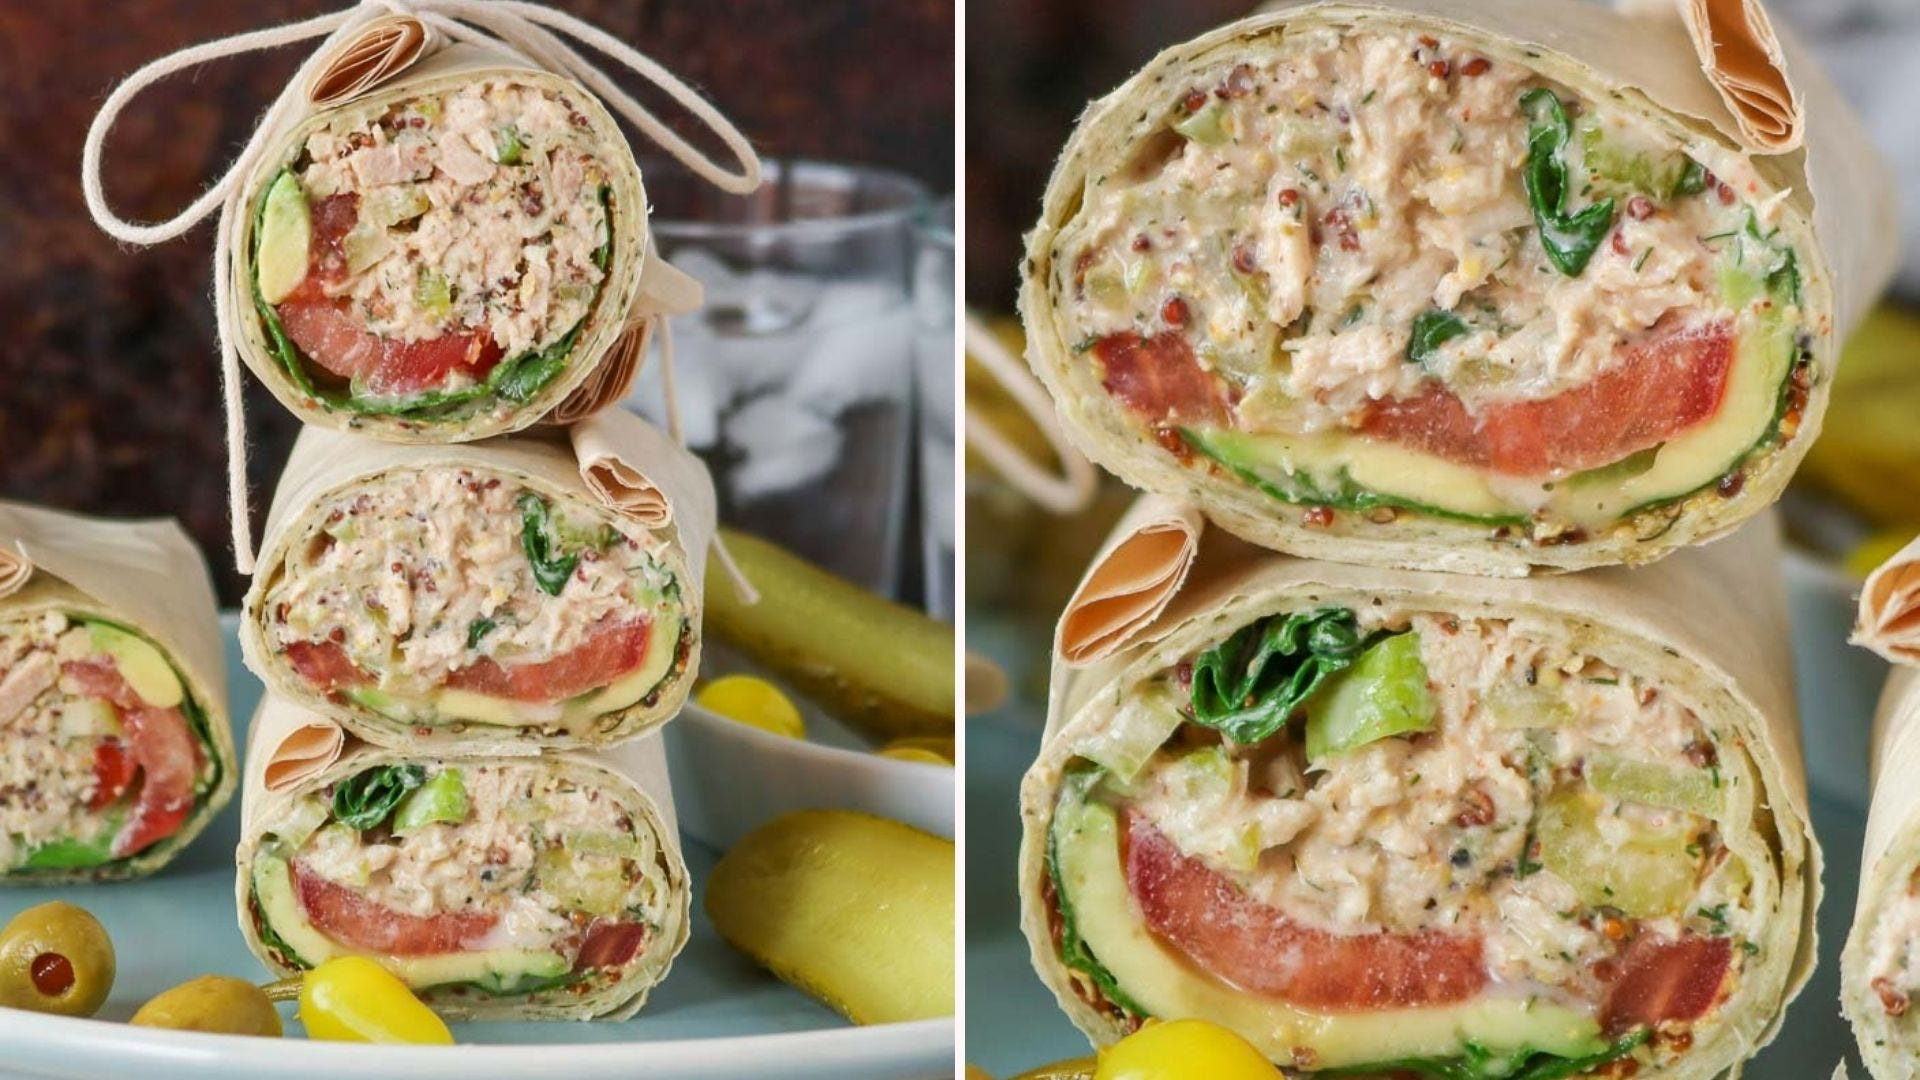 Two images of Greek Yogurt tuna salad, enveloped in a whole grain wrap, stacked high and ready to eat.